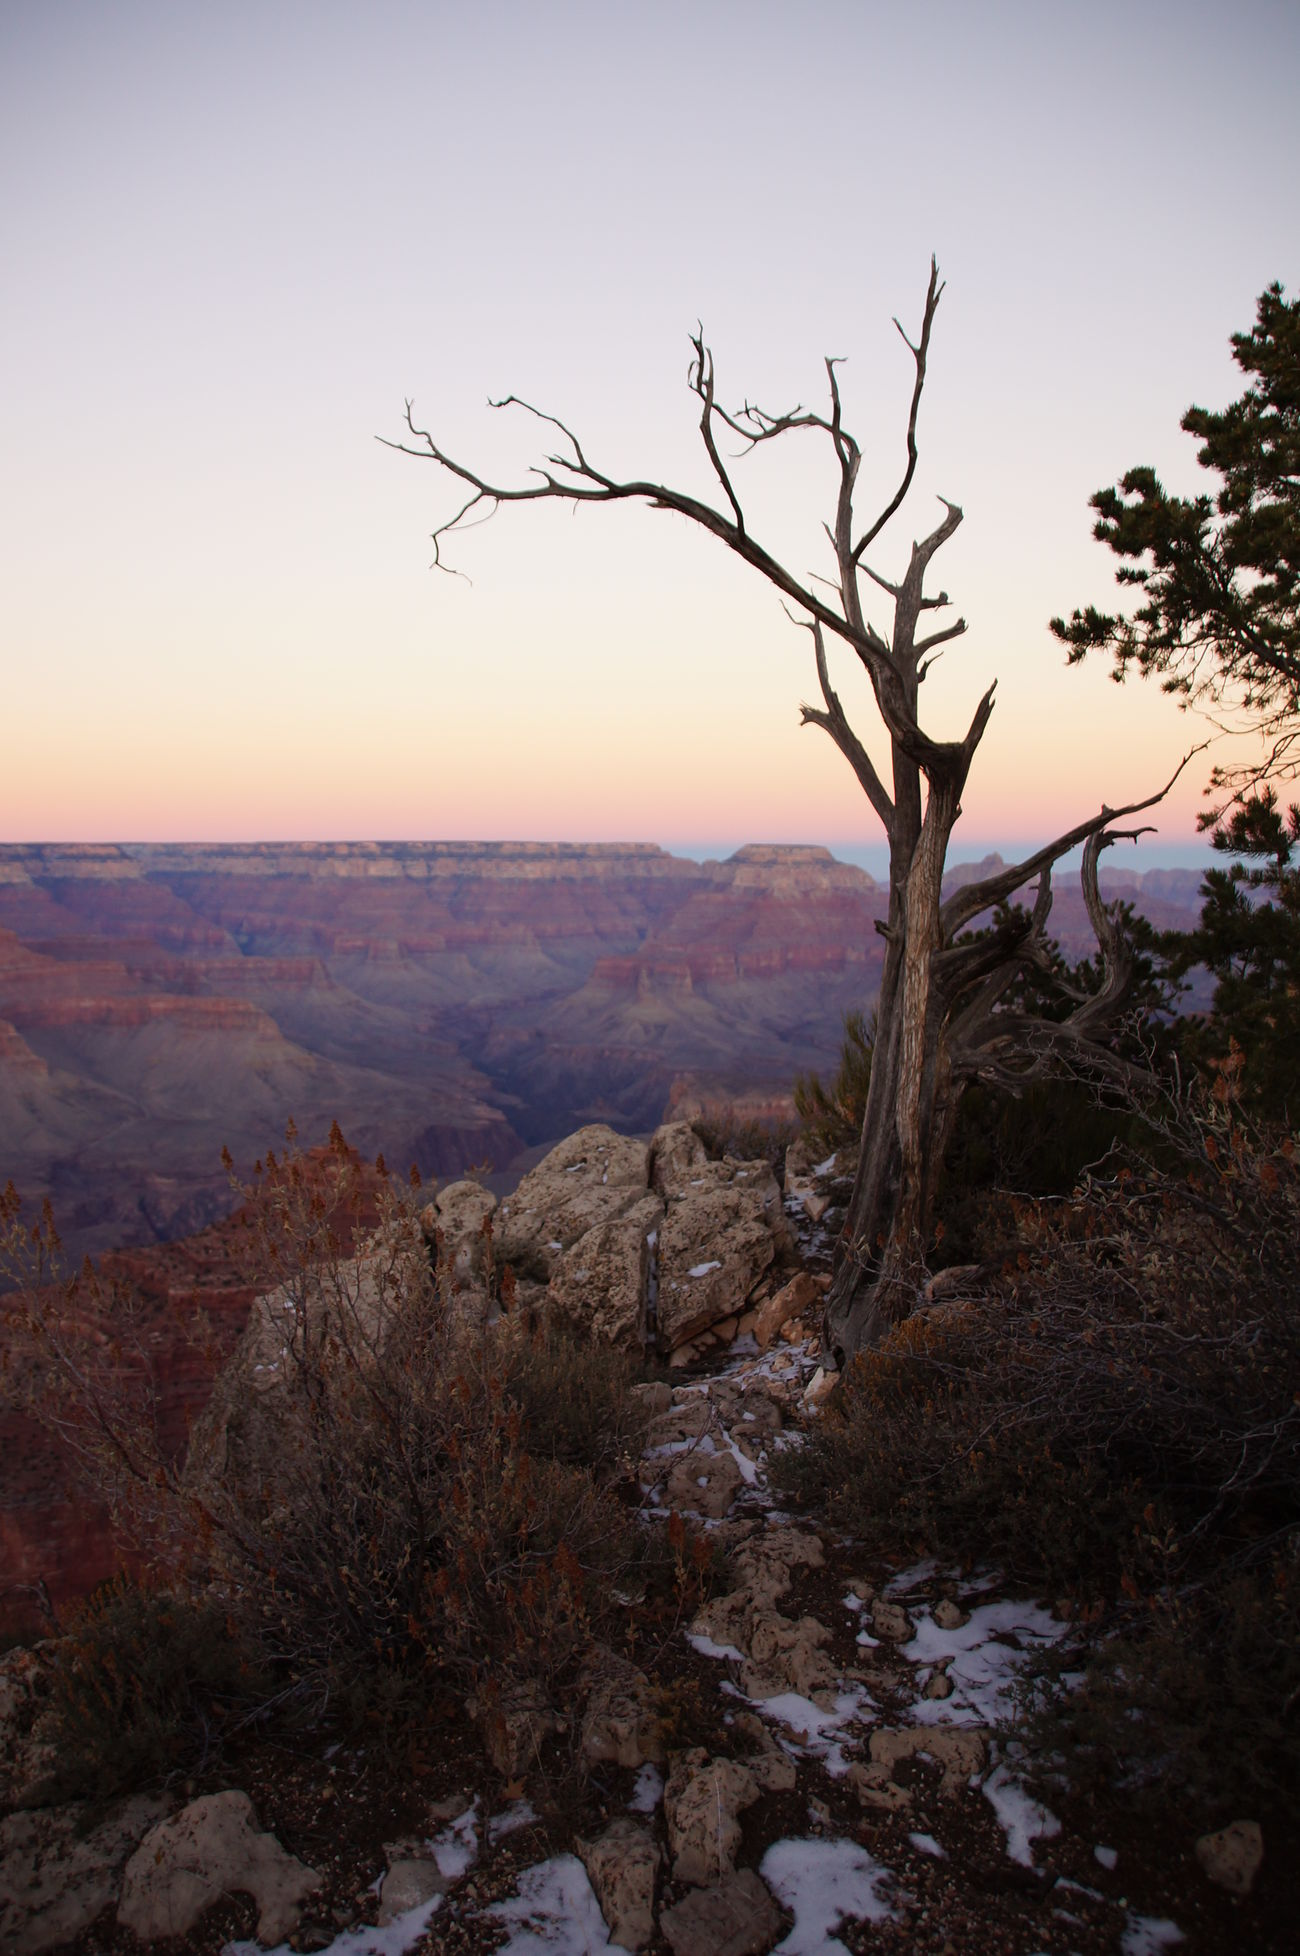 Arizona Beauty Beauty Of Decay Erosion Geography Grand Canyon Landscape Nature No People Outdoors Rock Sony A37 Sunset Tranquil Scene Tranquility Tree Zen-like